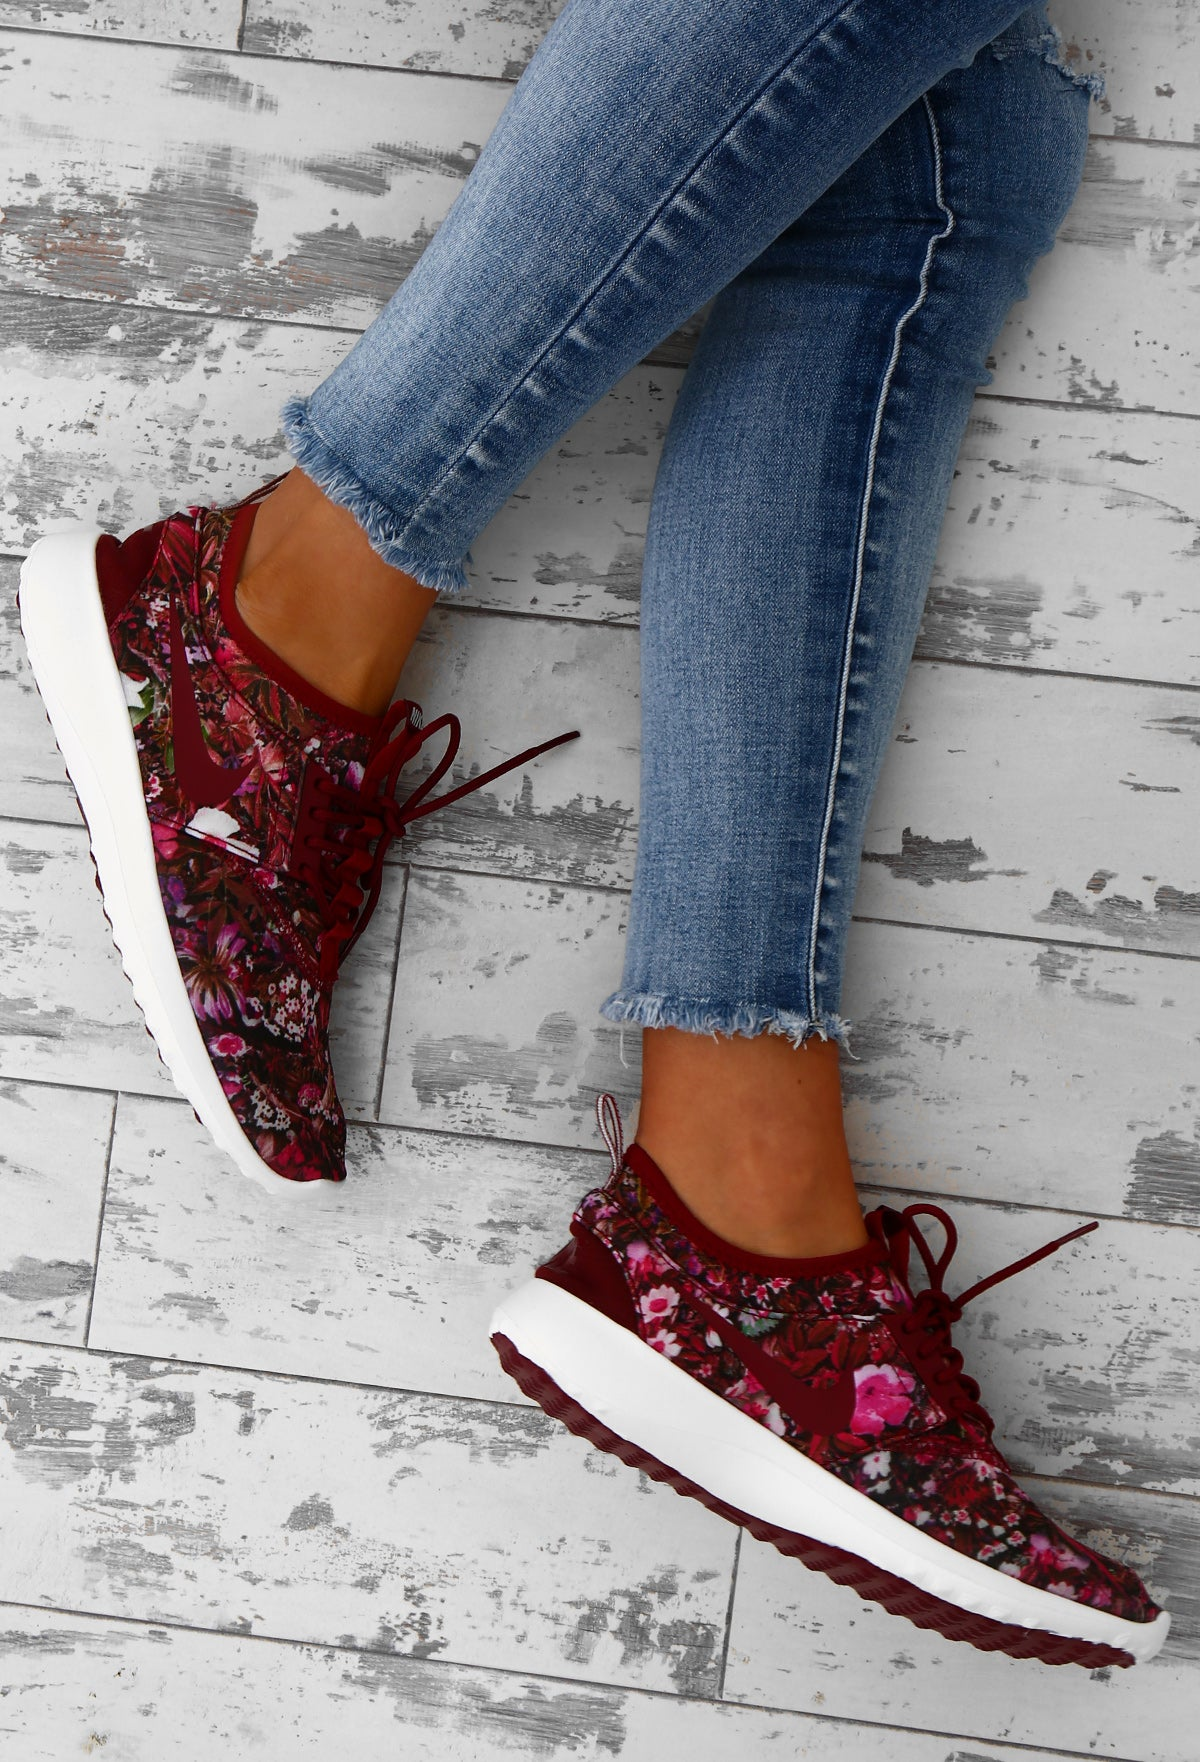 new styles e5237 6759d Nike Juvenate SE Team Burgundy Floral Trainers